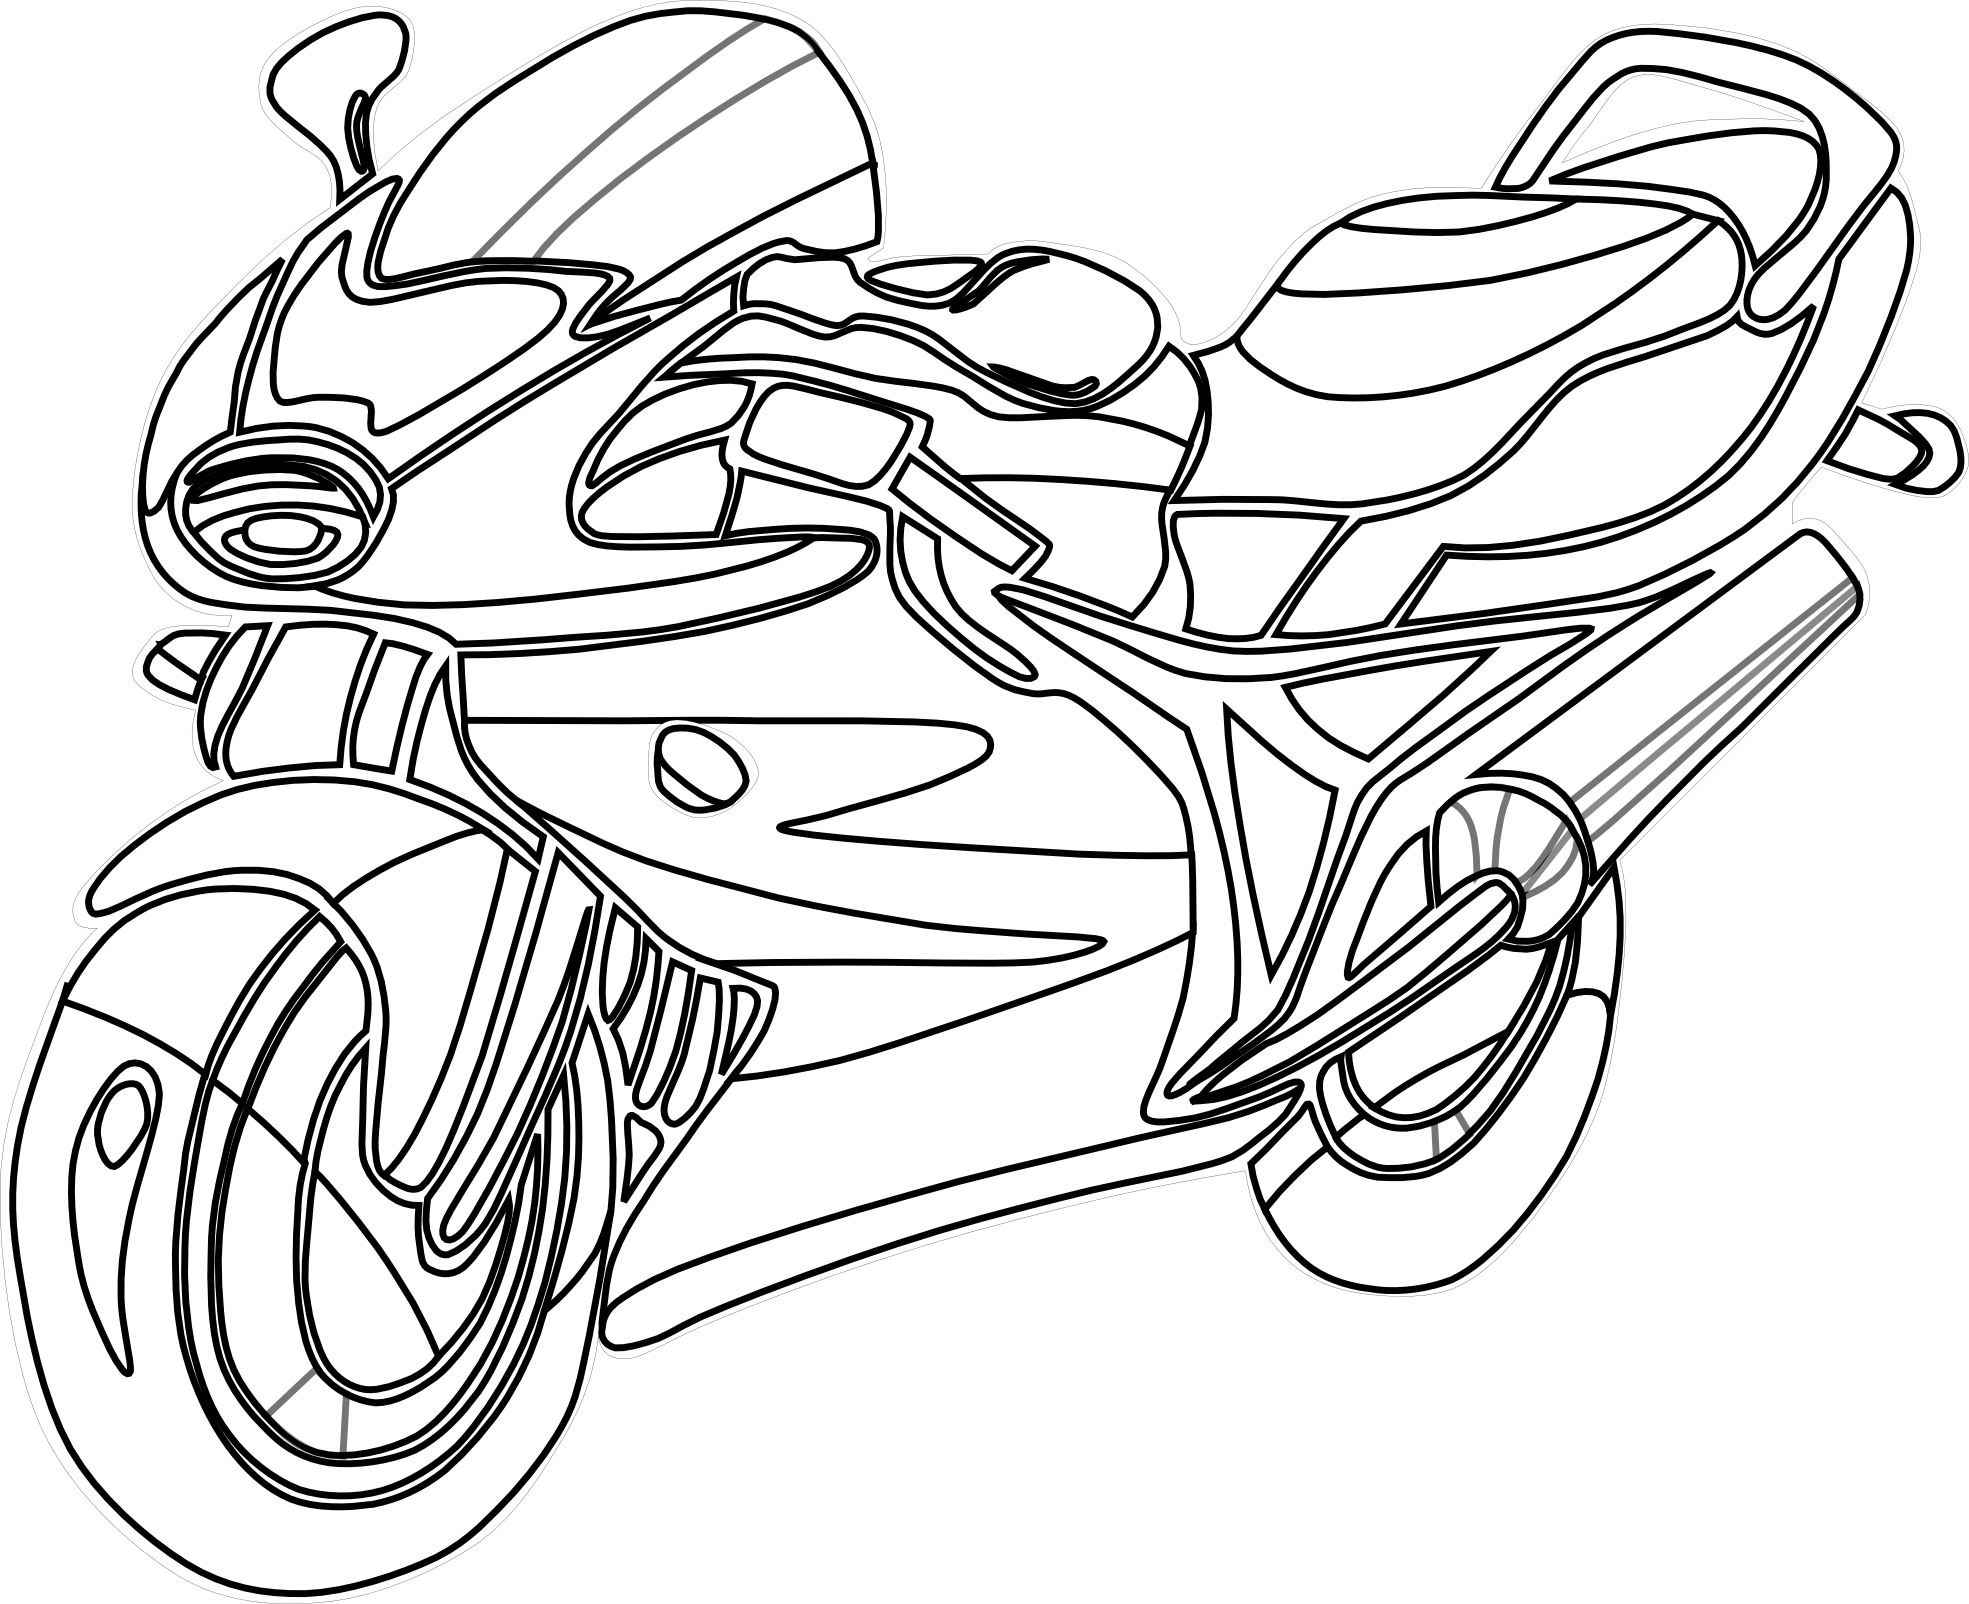 Motorcycle outline drawing at. Cycle clipart bike scooter